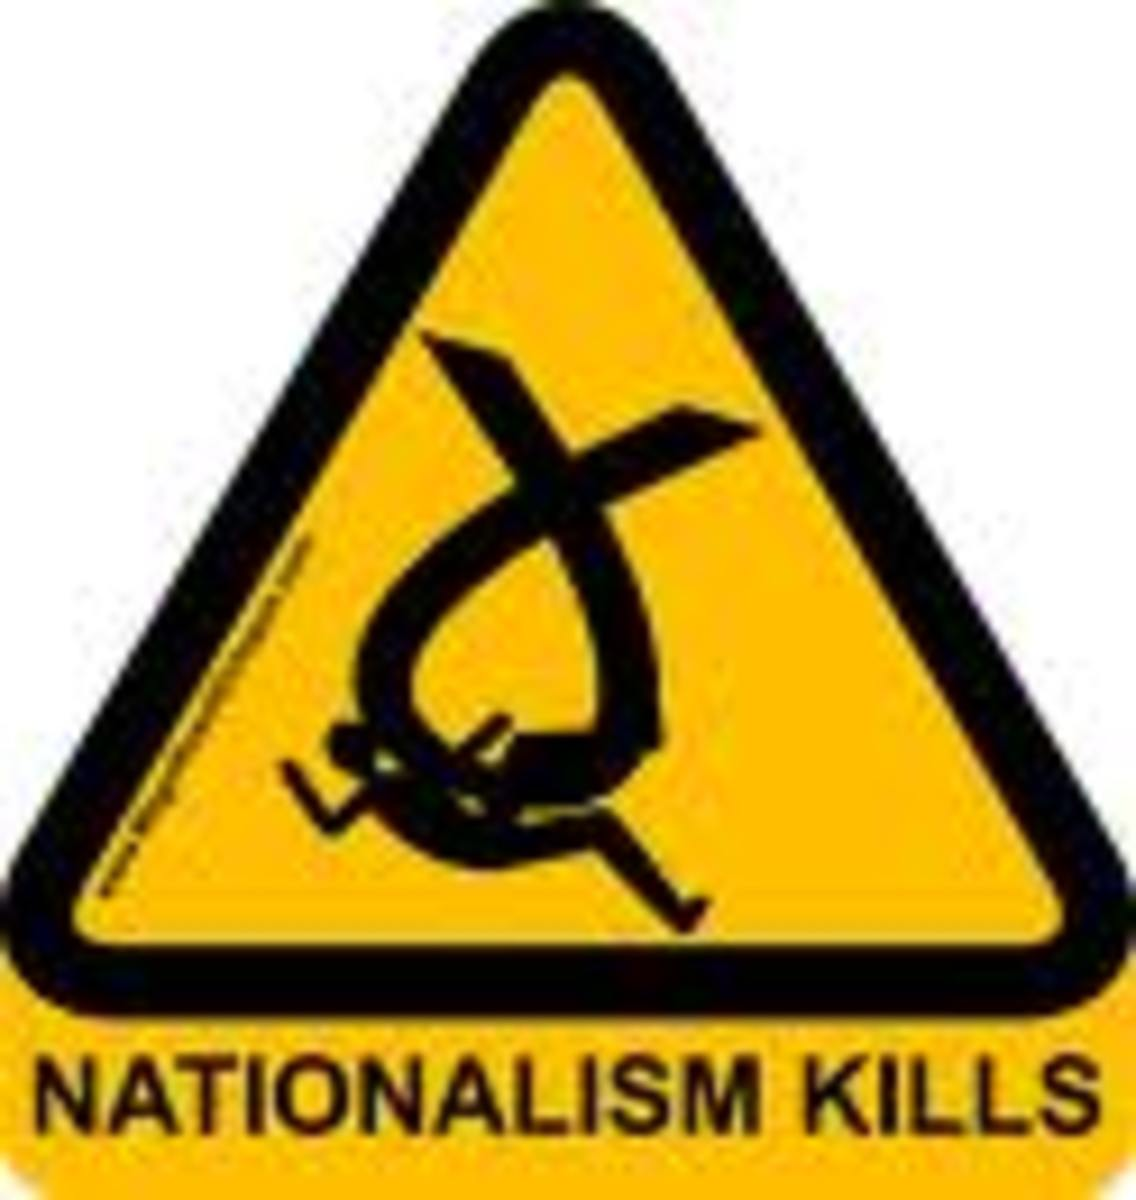 Dangers of Nationalism